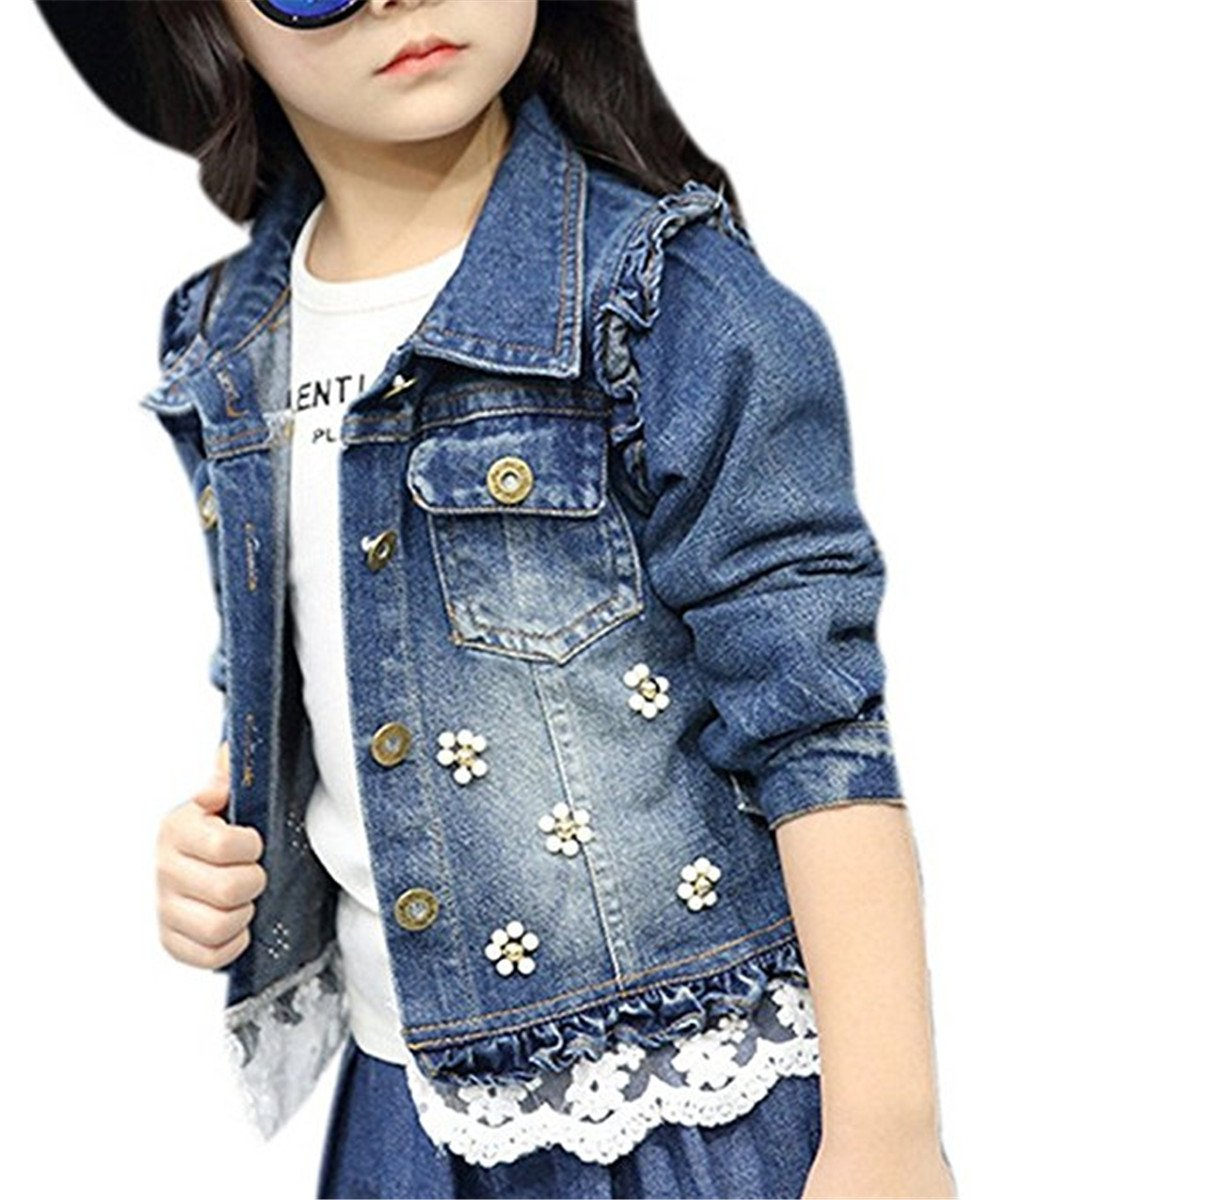 JELEUON Little Big Girls Kids Flower&Lace Patch Front Buttons Denim Short Jacket Coat Outwear